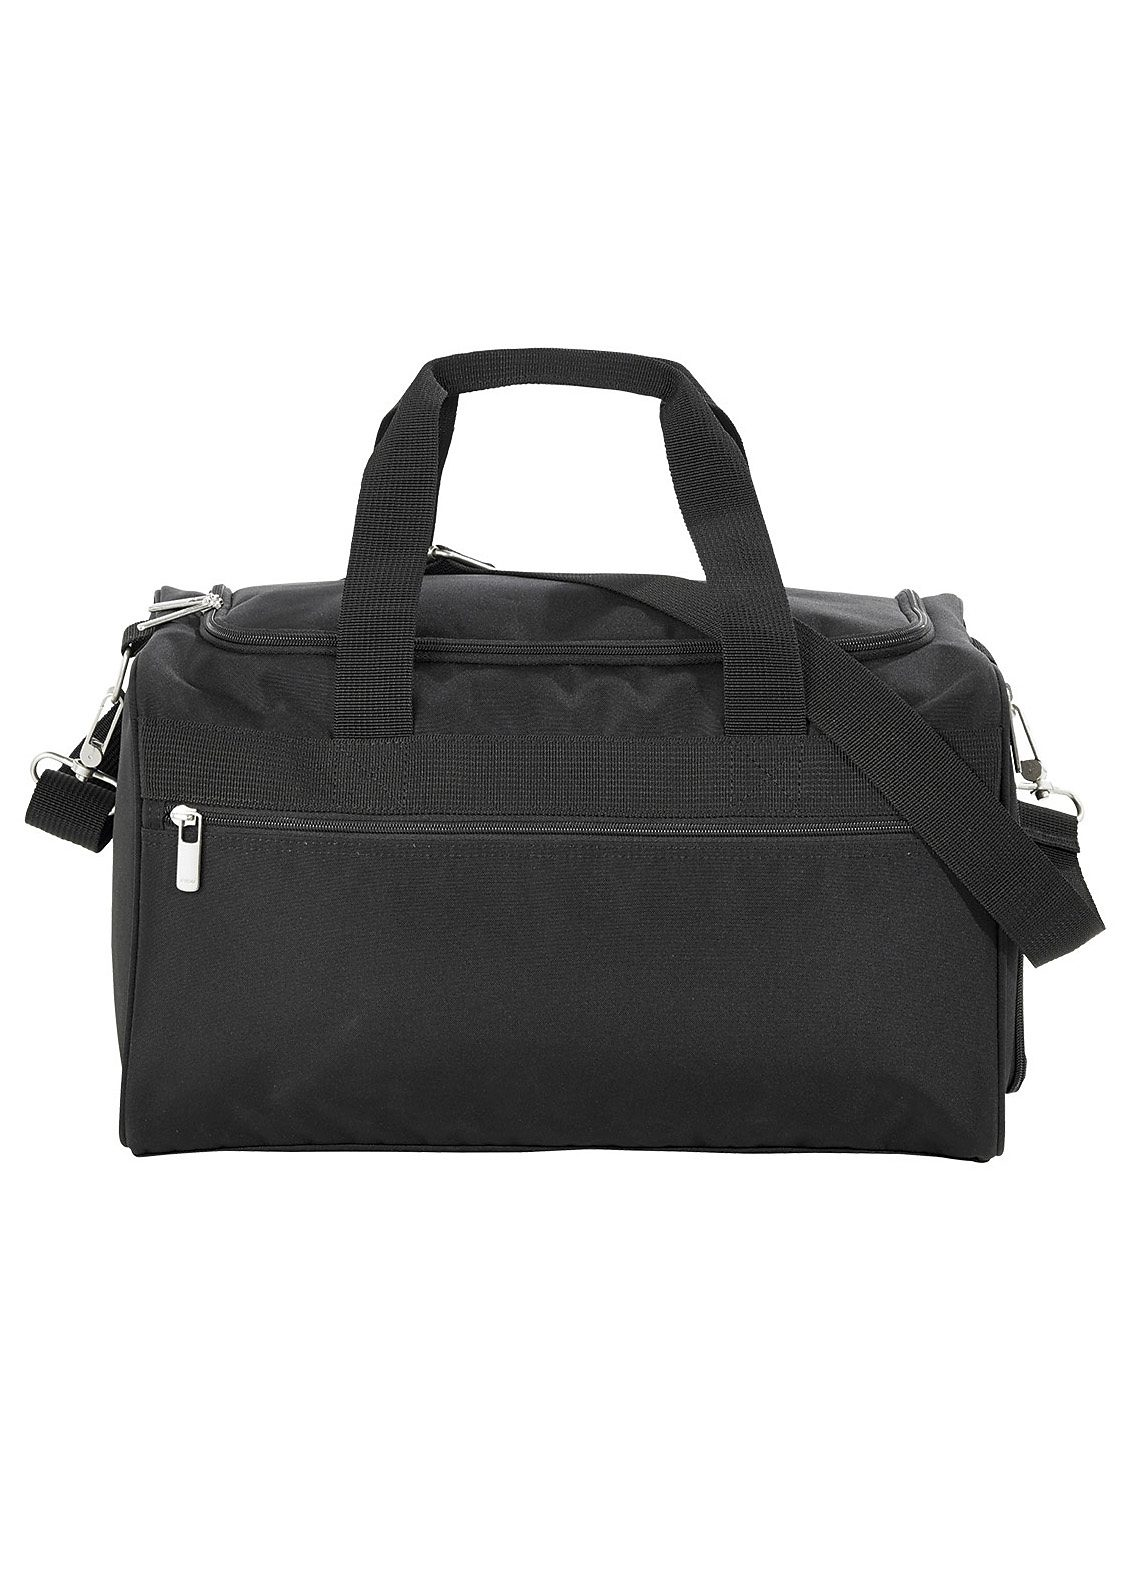 4YOU Sporttasche, Black, »Sportbag M«